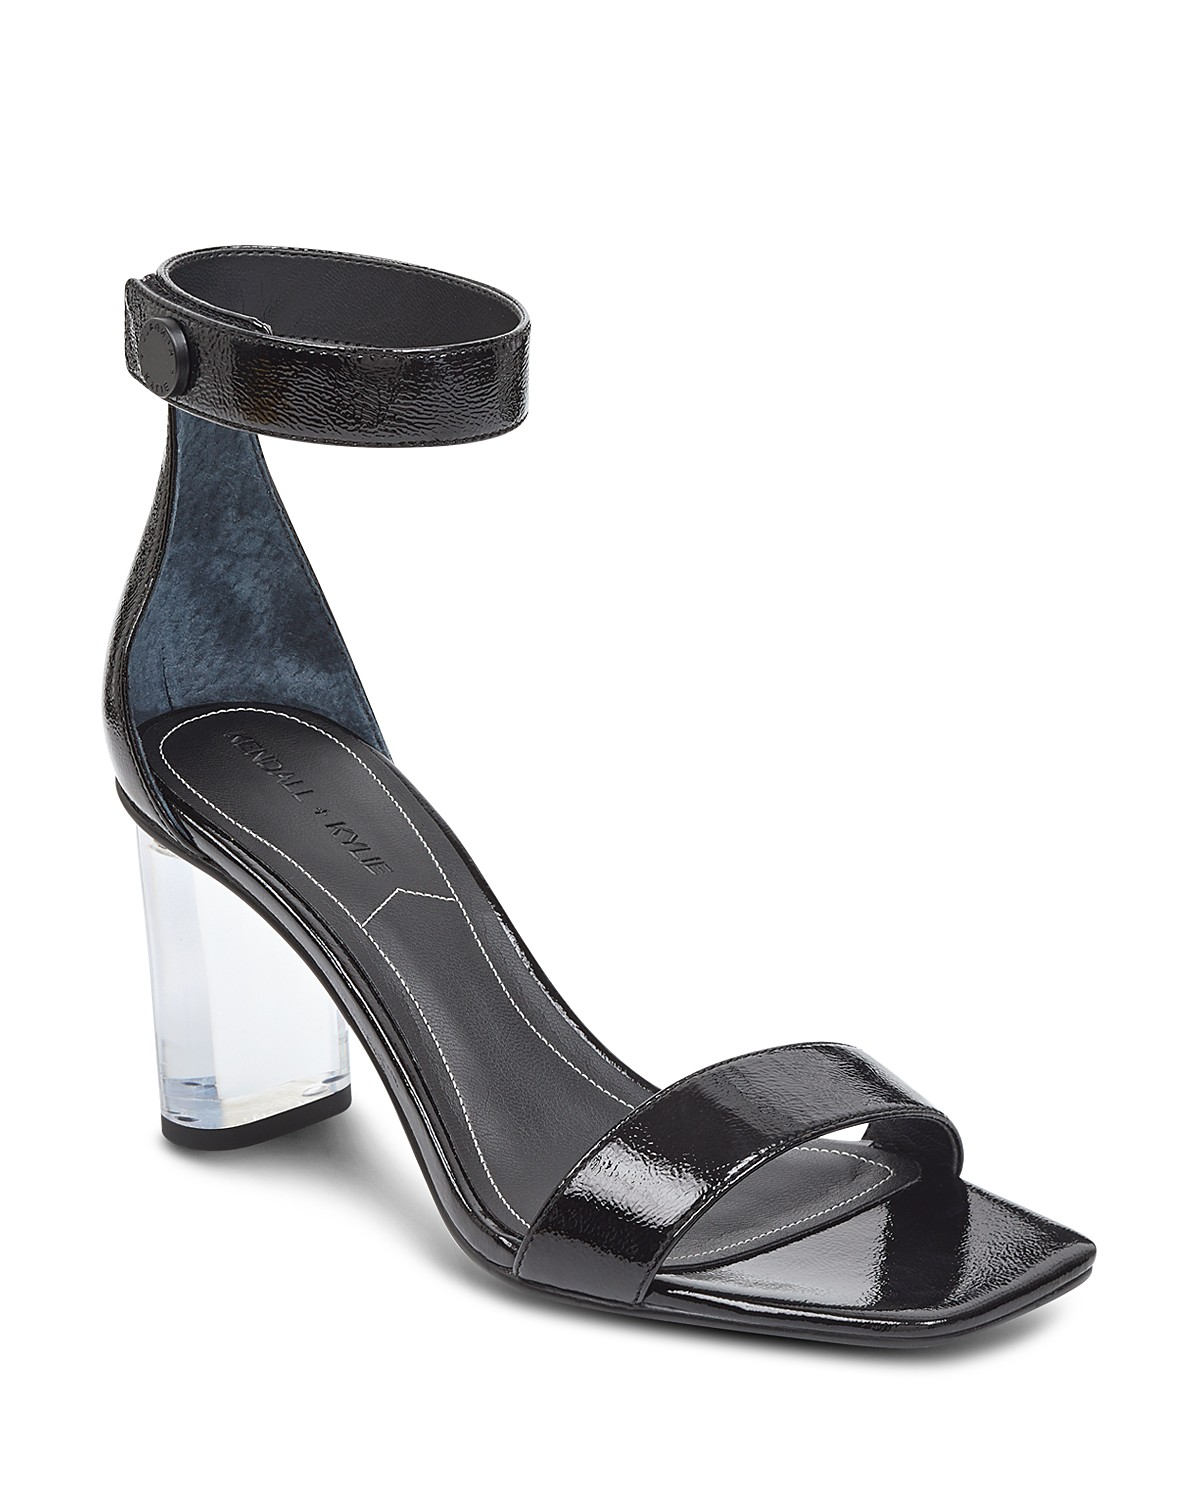 Kendall And Kylie Women's Lexx Patent Leather & Lucite High-Heel Sandals MQAGUxb